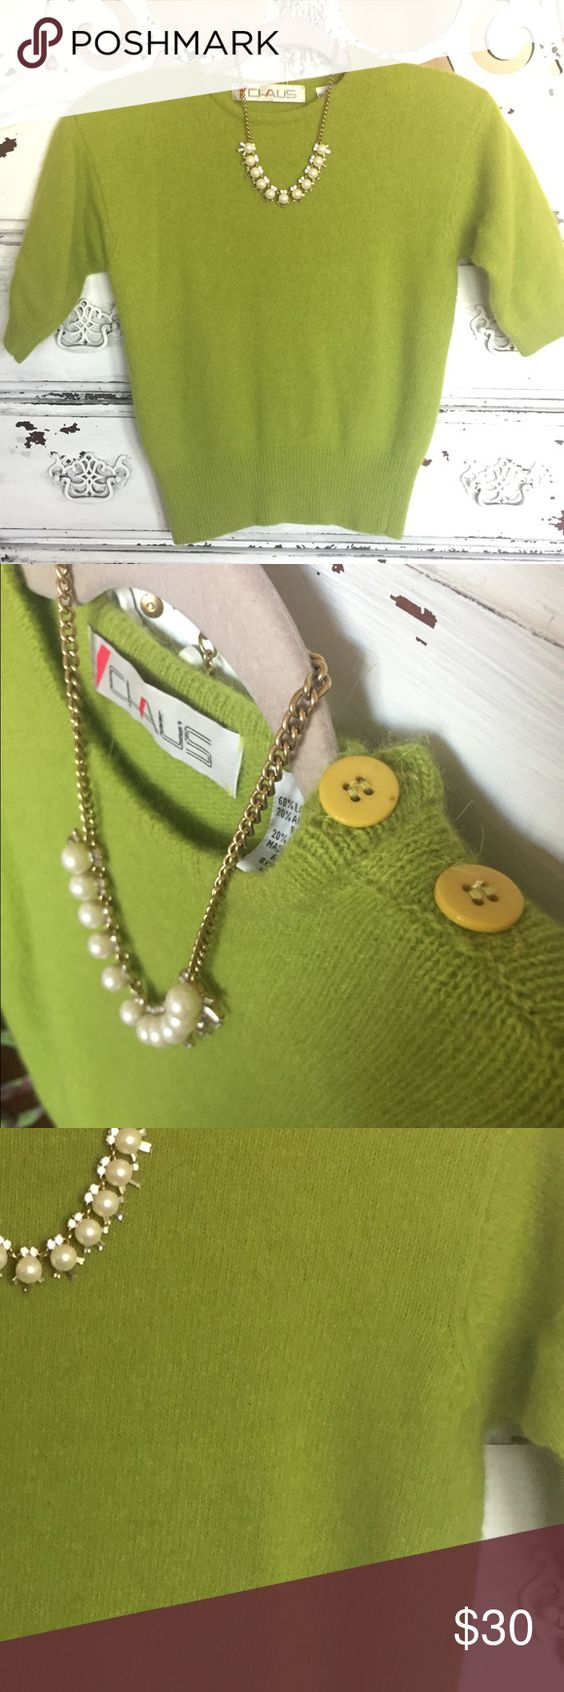 Glorious vintage green sweater Cropped to perfection. Pair this with some funky earrings and you're good to go girl! Shoulder pads could be removed. Fits like a medium. Vintage Sweaters Crew & Scoop Necks